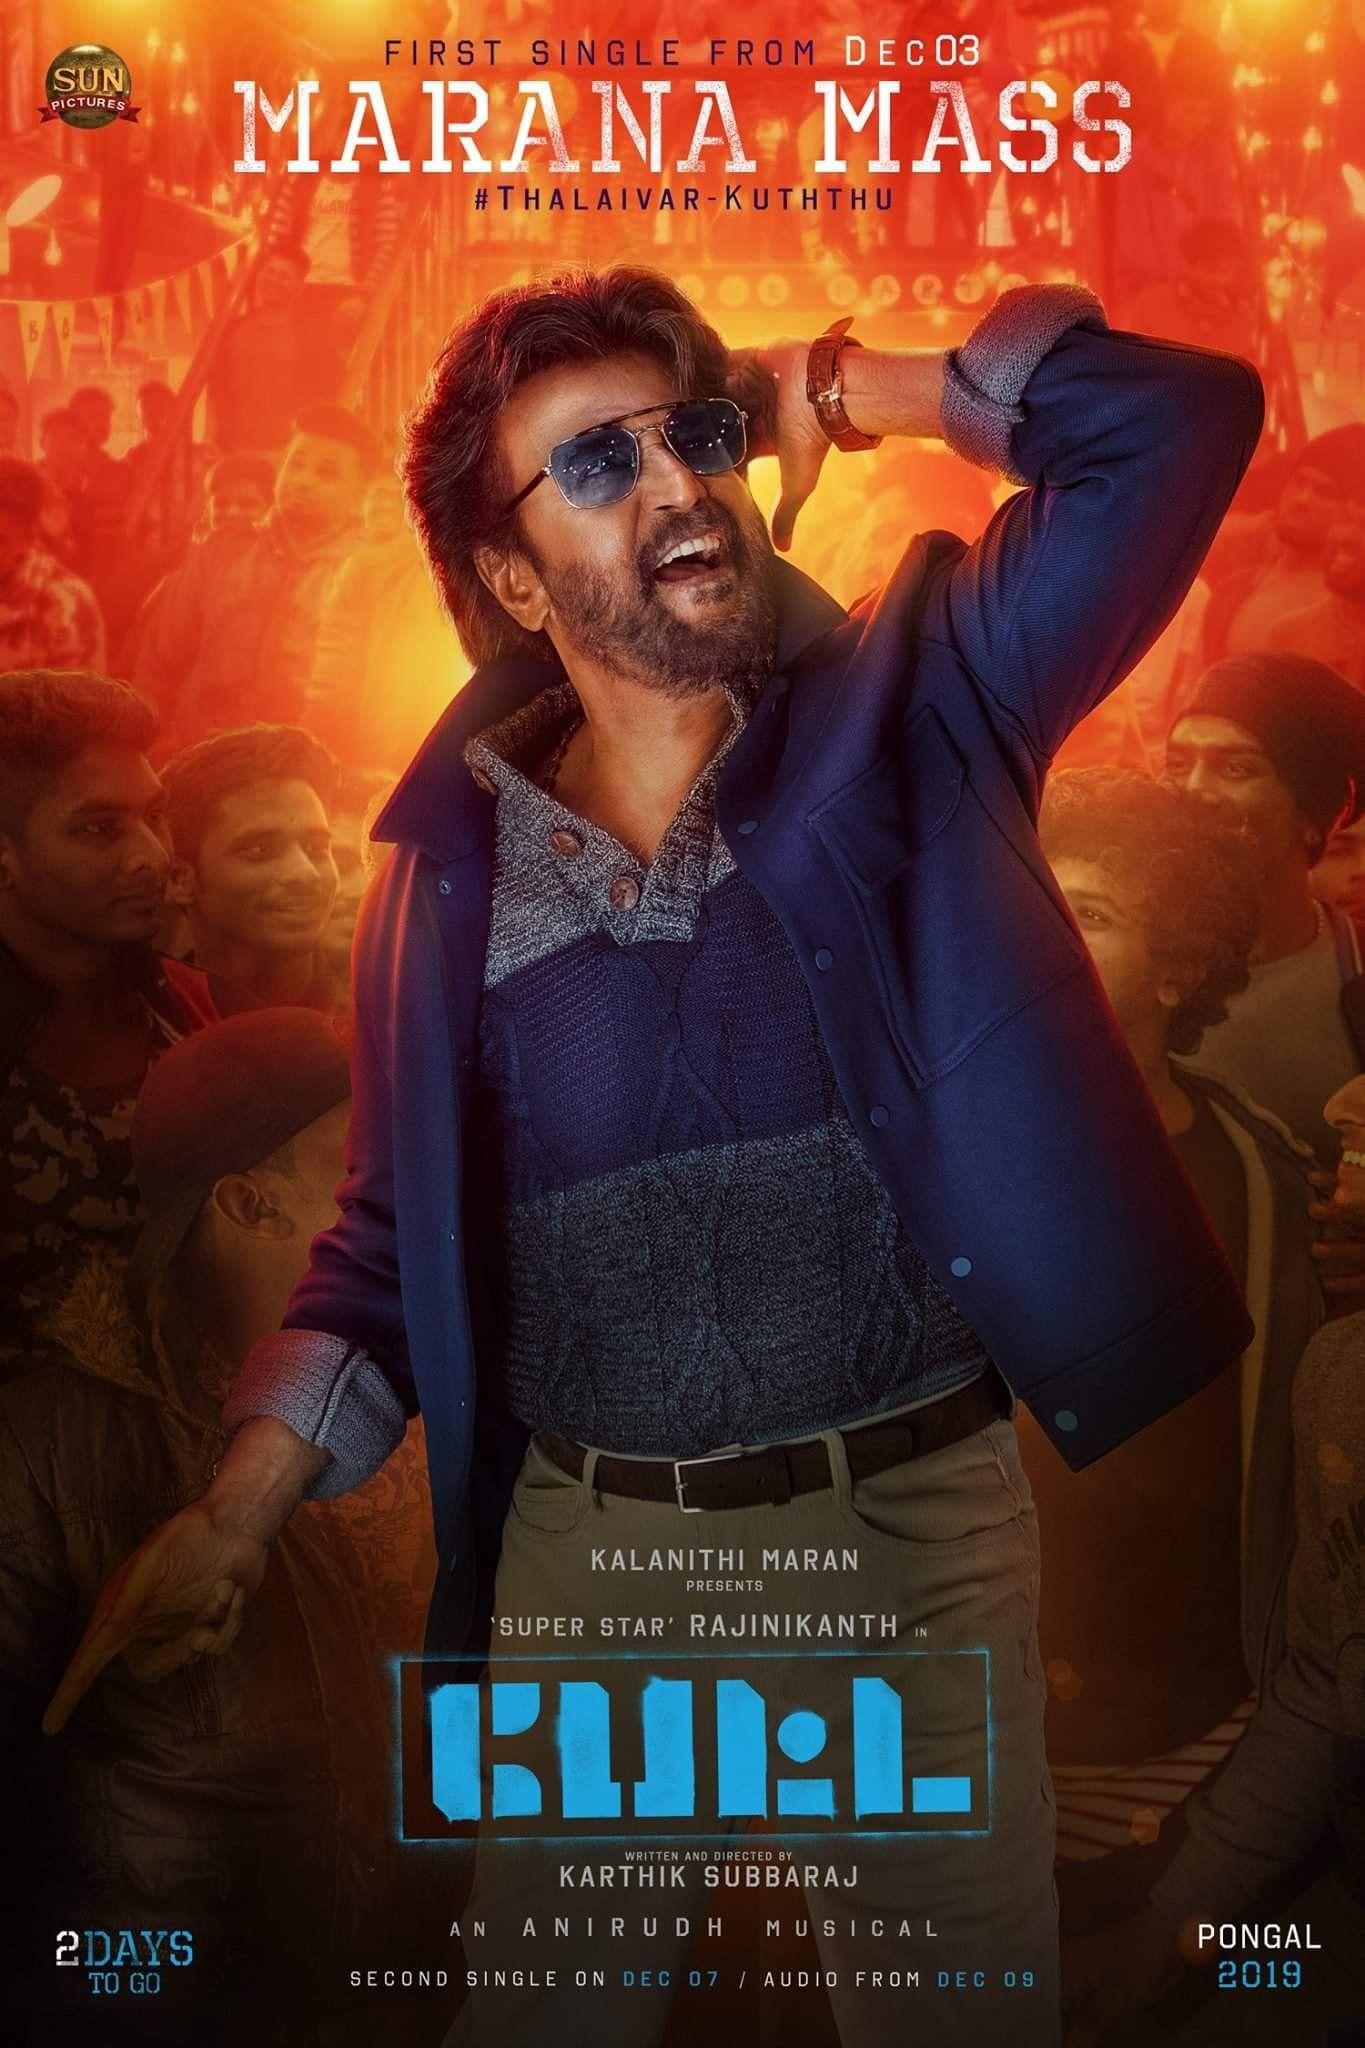 Petta Tamil Movie Latest Photos And Updates Mp3 Song Mp3 Song